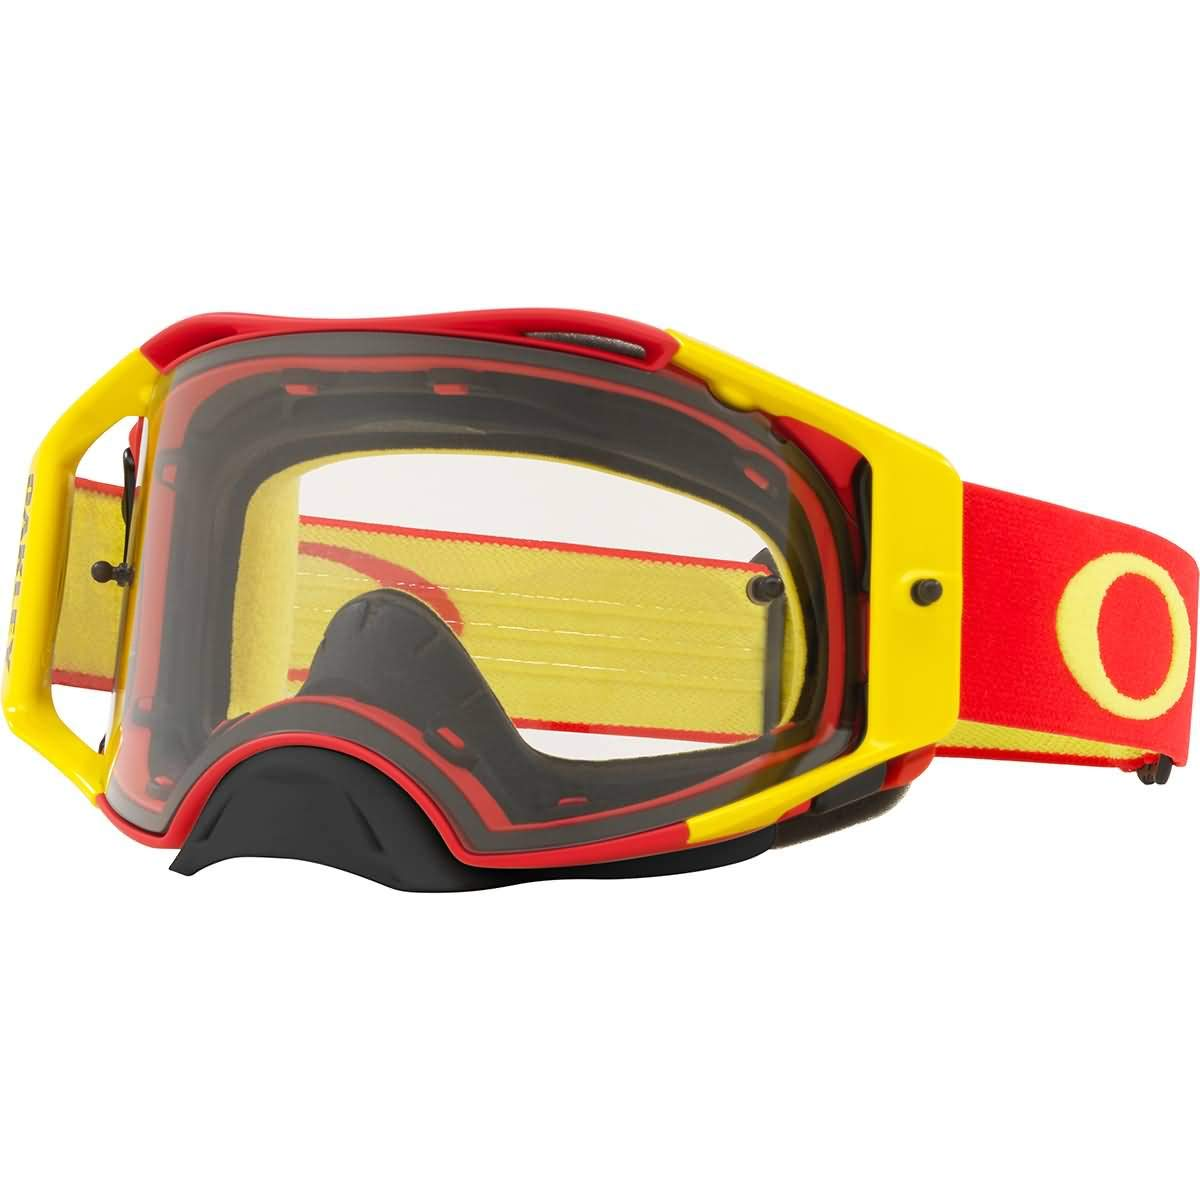 Oakley Airbrake MX Adult Off-Road Motorcycle Goggles - Red Yellow/Clear